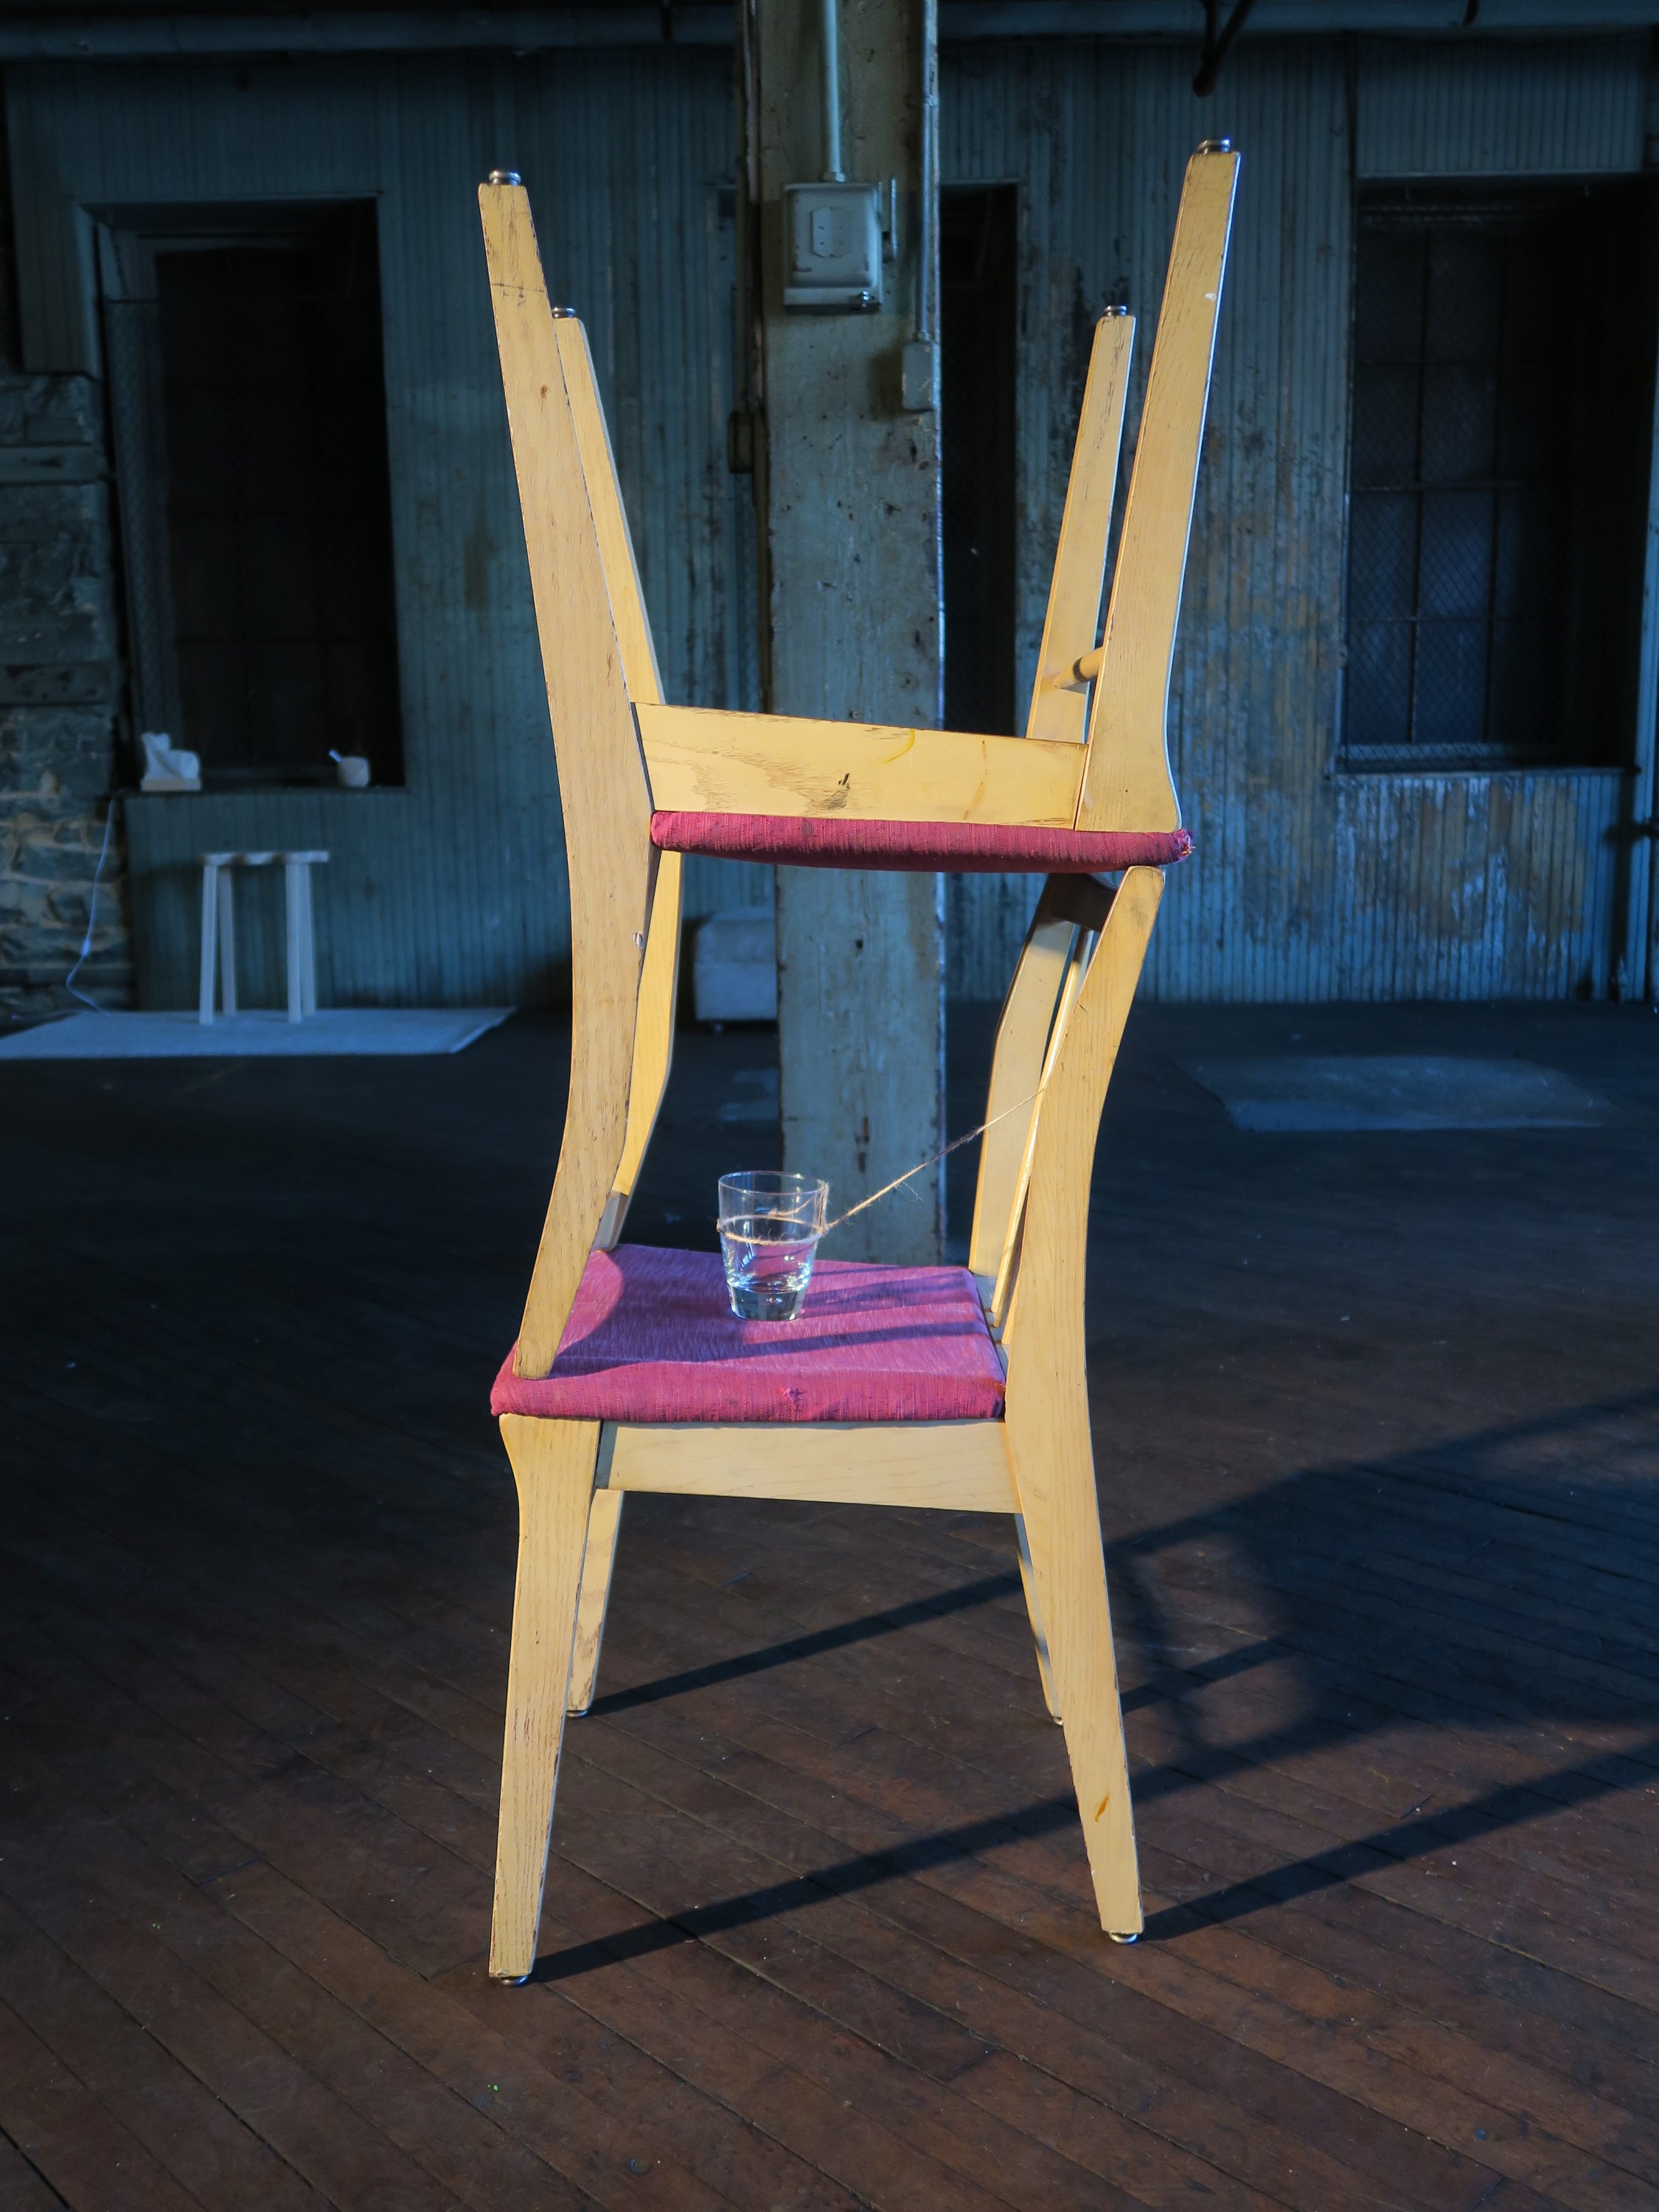 Two chairs - one stacked inverted on the other. A plate with canned sardines, a fork and a knife is placed inside the space underneath the seat of the inverted chair. The plate is tied with a twine which connects to a glass of water placed on the seat of